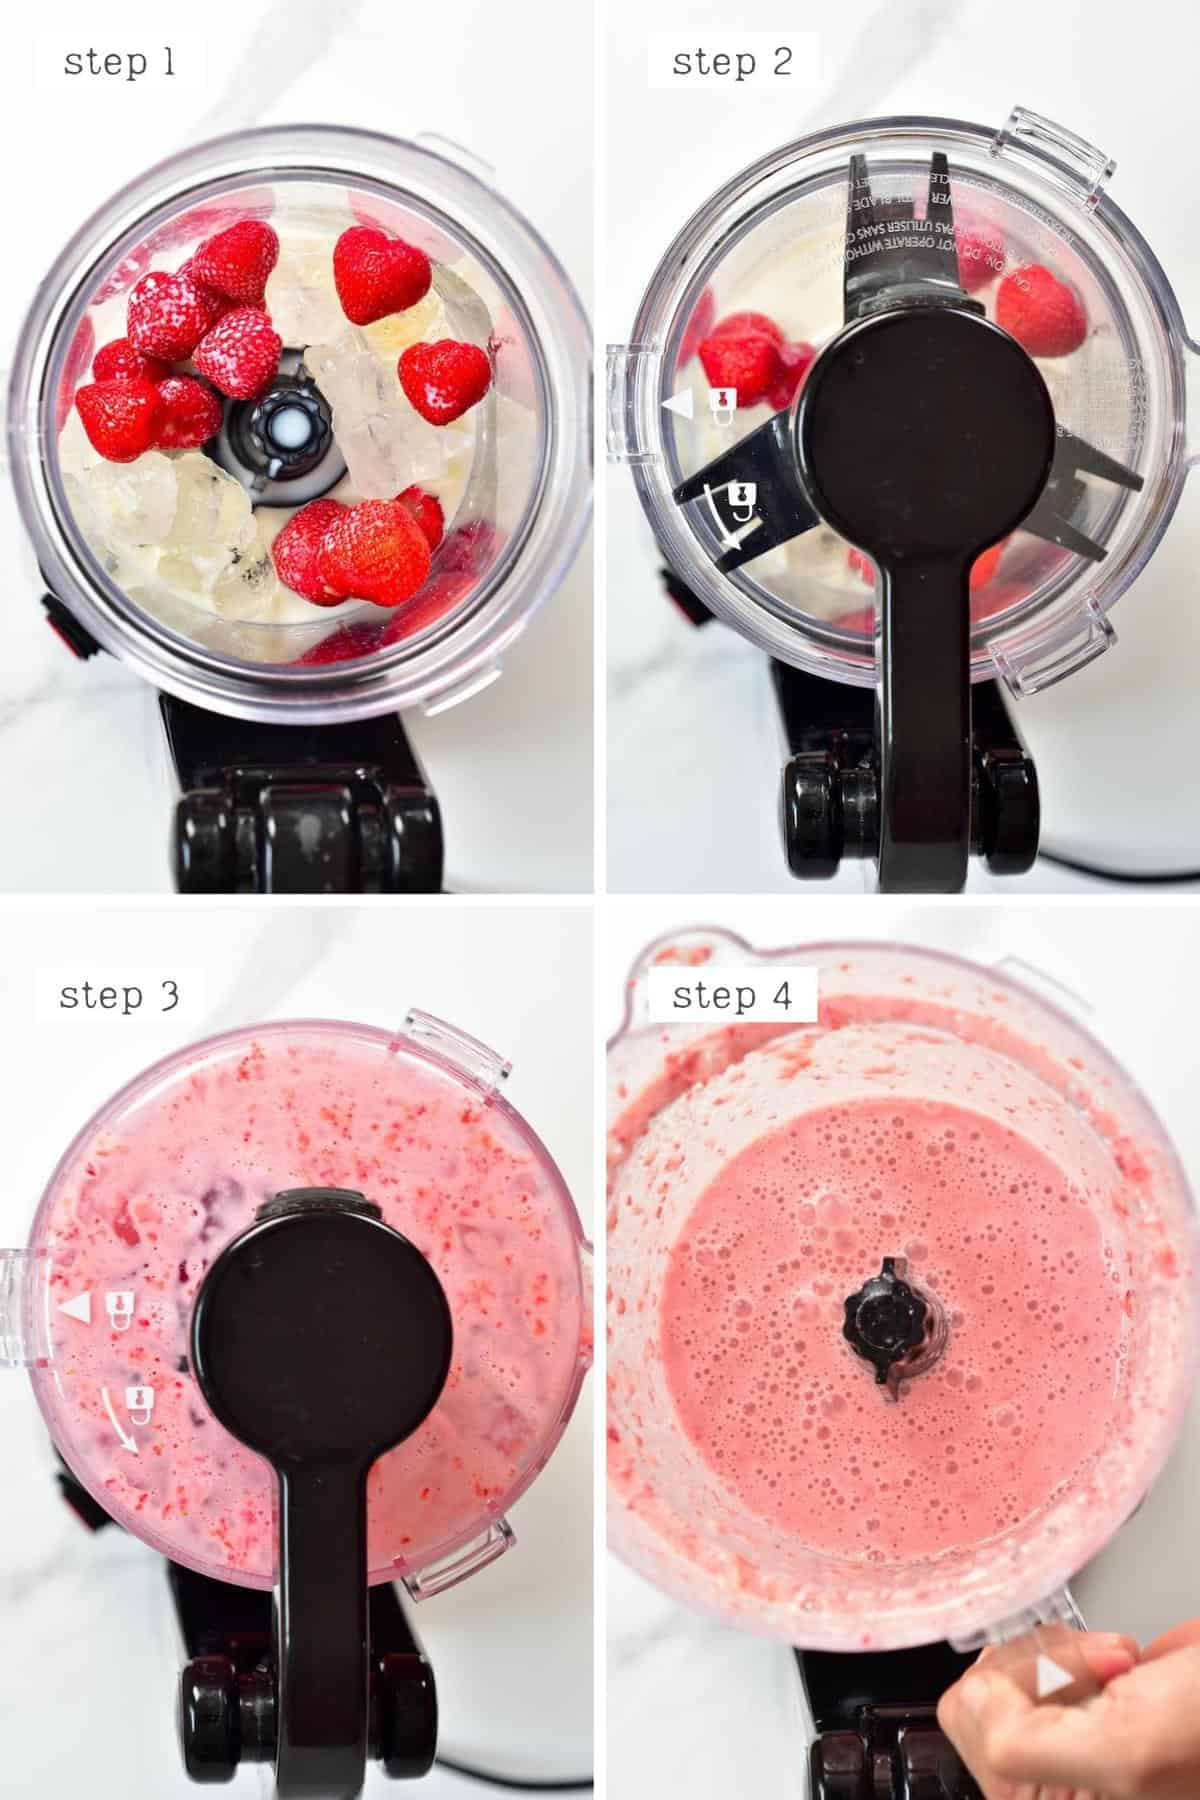 Steps for making strawberry Frappuccino